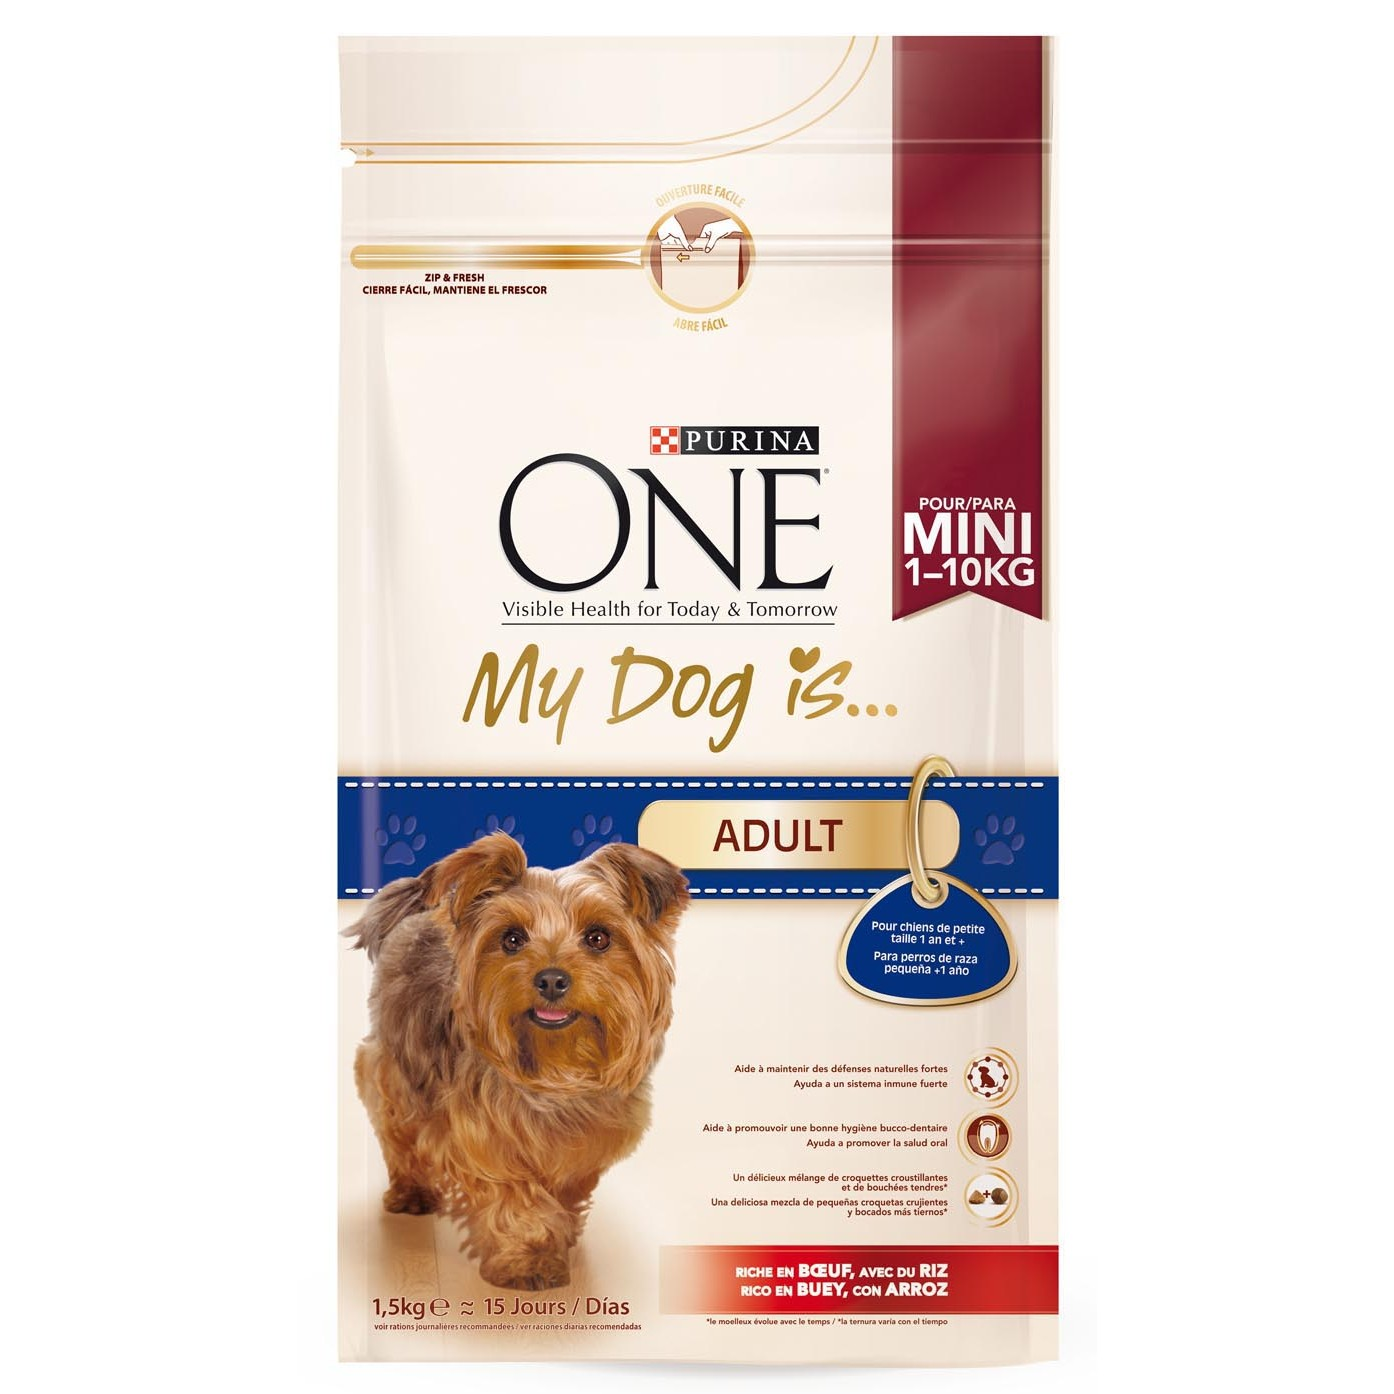 Purina One Mini one my dog is adult mezcla croquetas crujientes bocados tiernos rico en buey arroz perros mini de 1,5kg. en bolsa